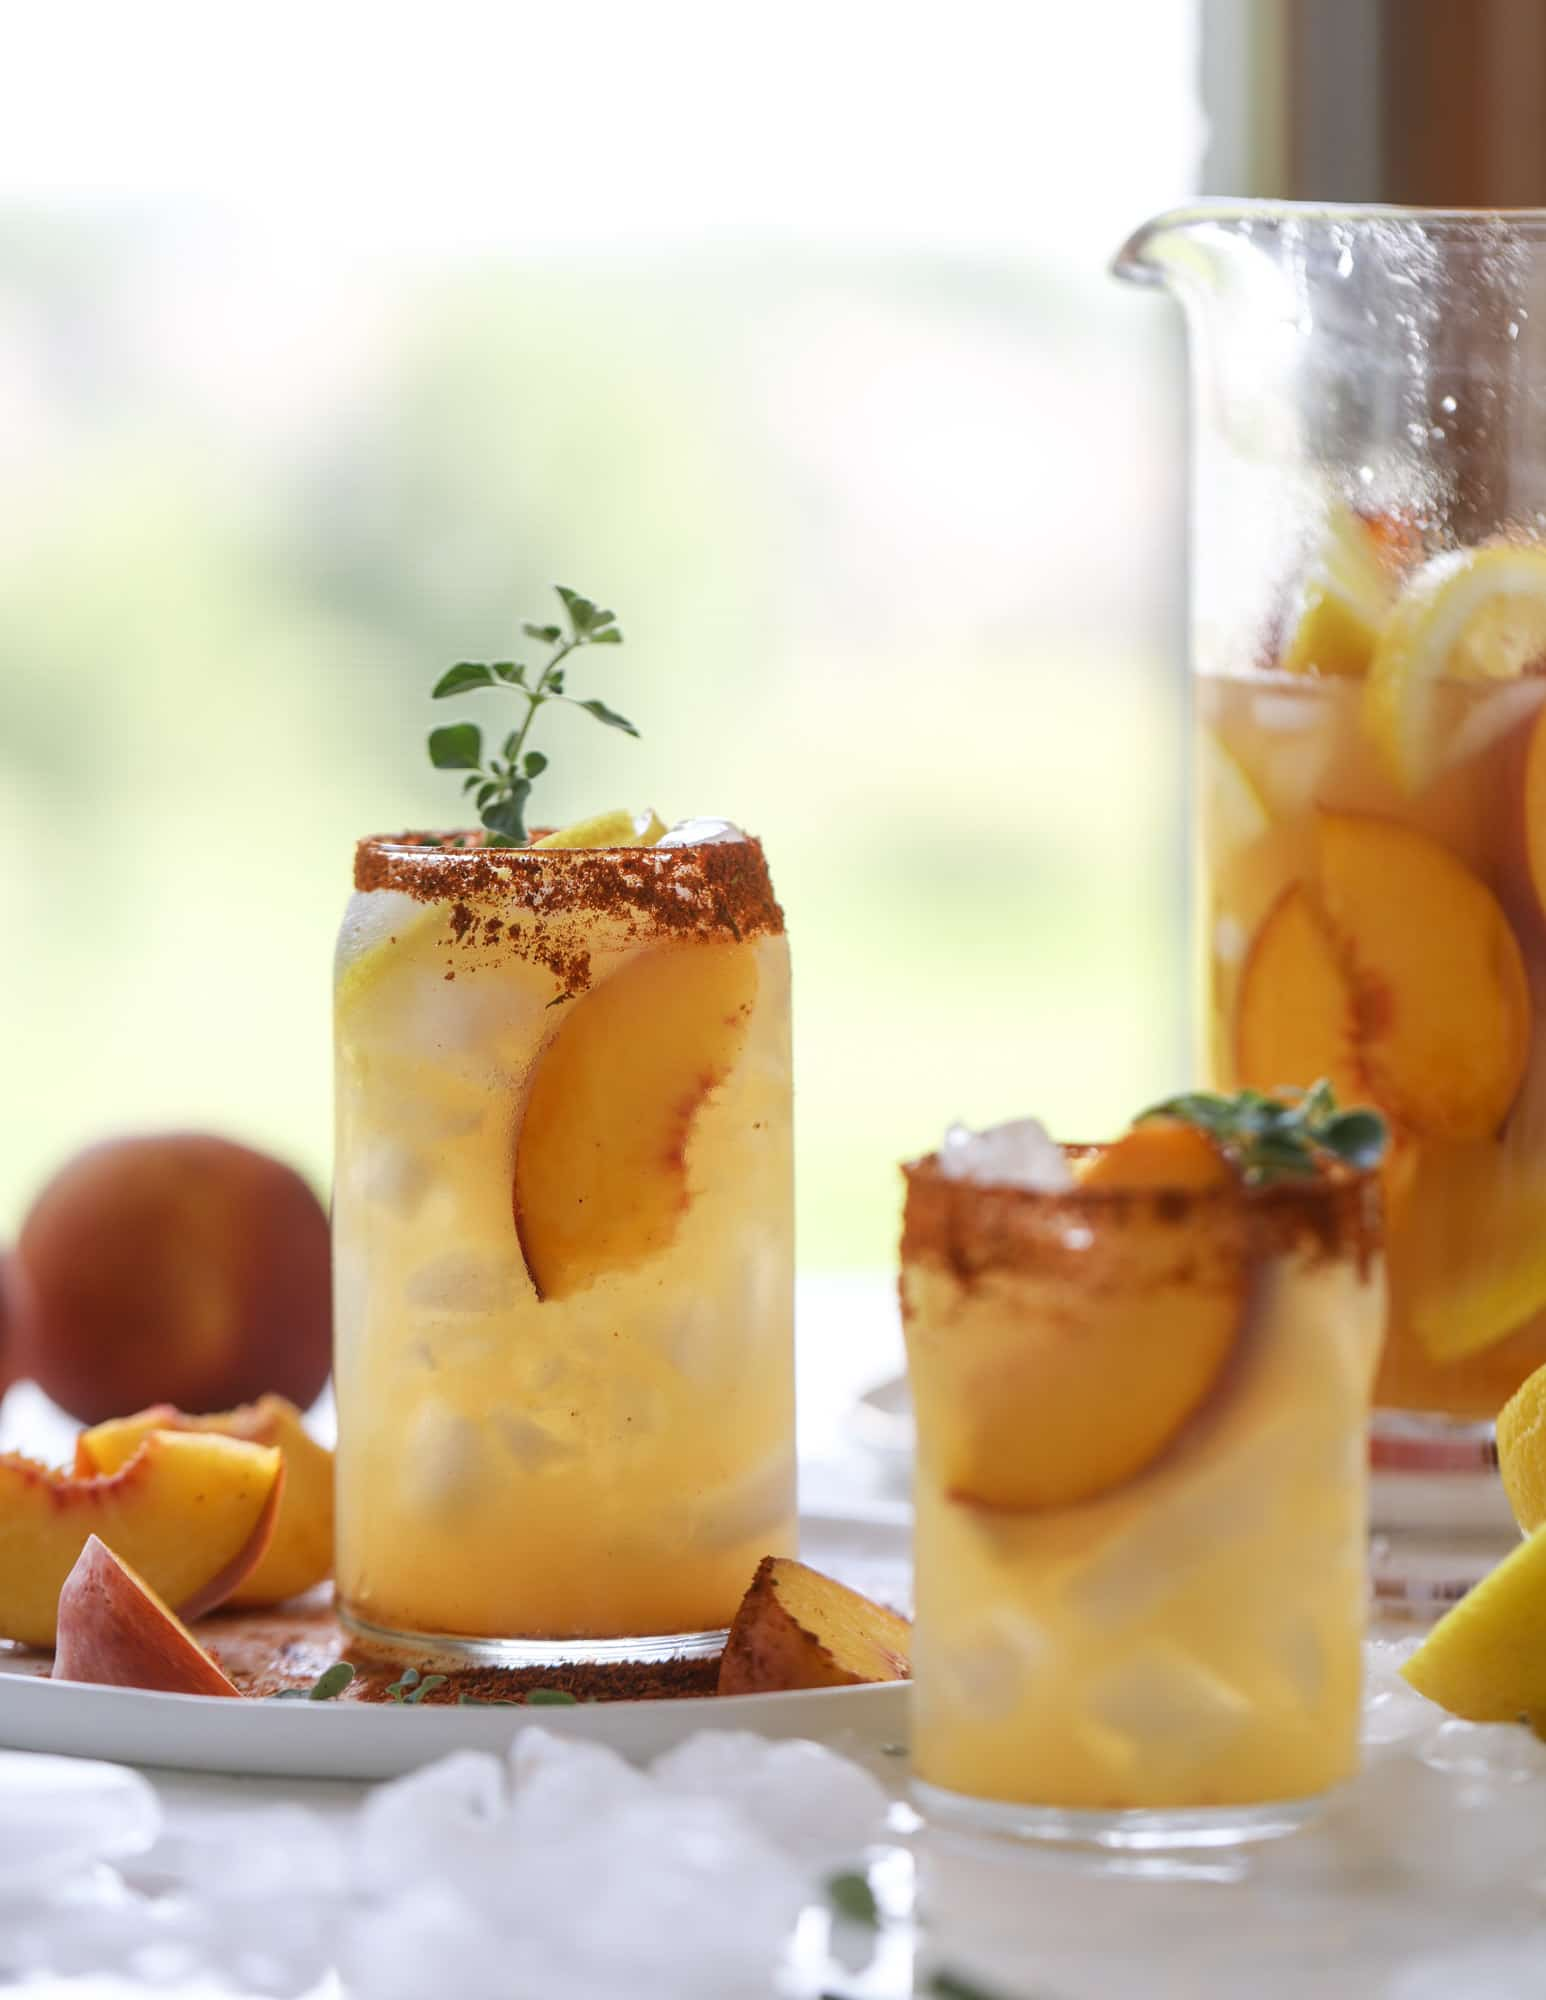 This peach lemonade is super refreshing and a bit spicy for a hot and sunny summer day. It's sweet and fresh and the rim is dipped in a cajun seasoning, bringing the best bite of heat to this perfect summer drink. So fresh! I howsweeteats.com #peach #lemonade #cajun  #summer #mocktail #lemon #drink